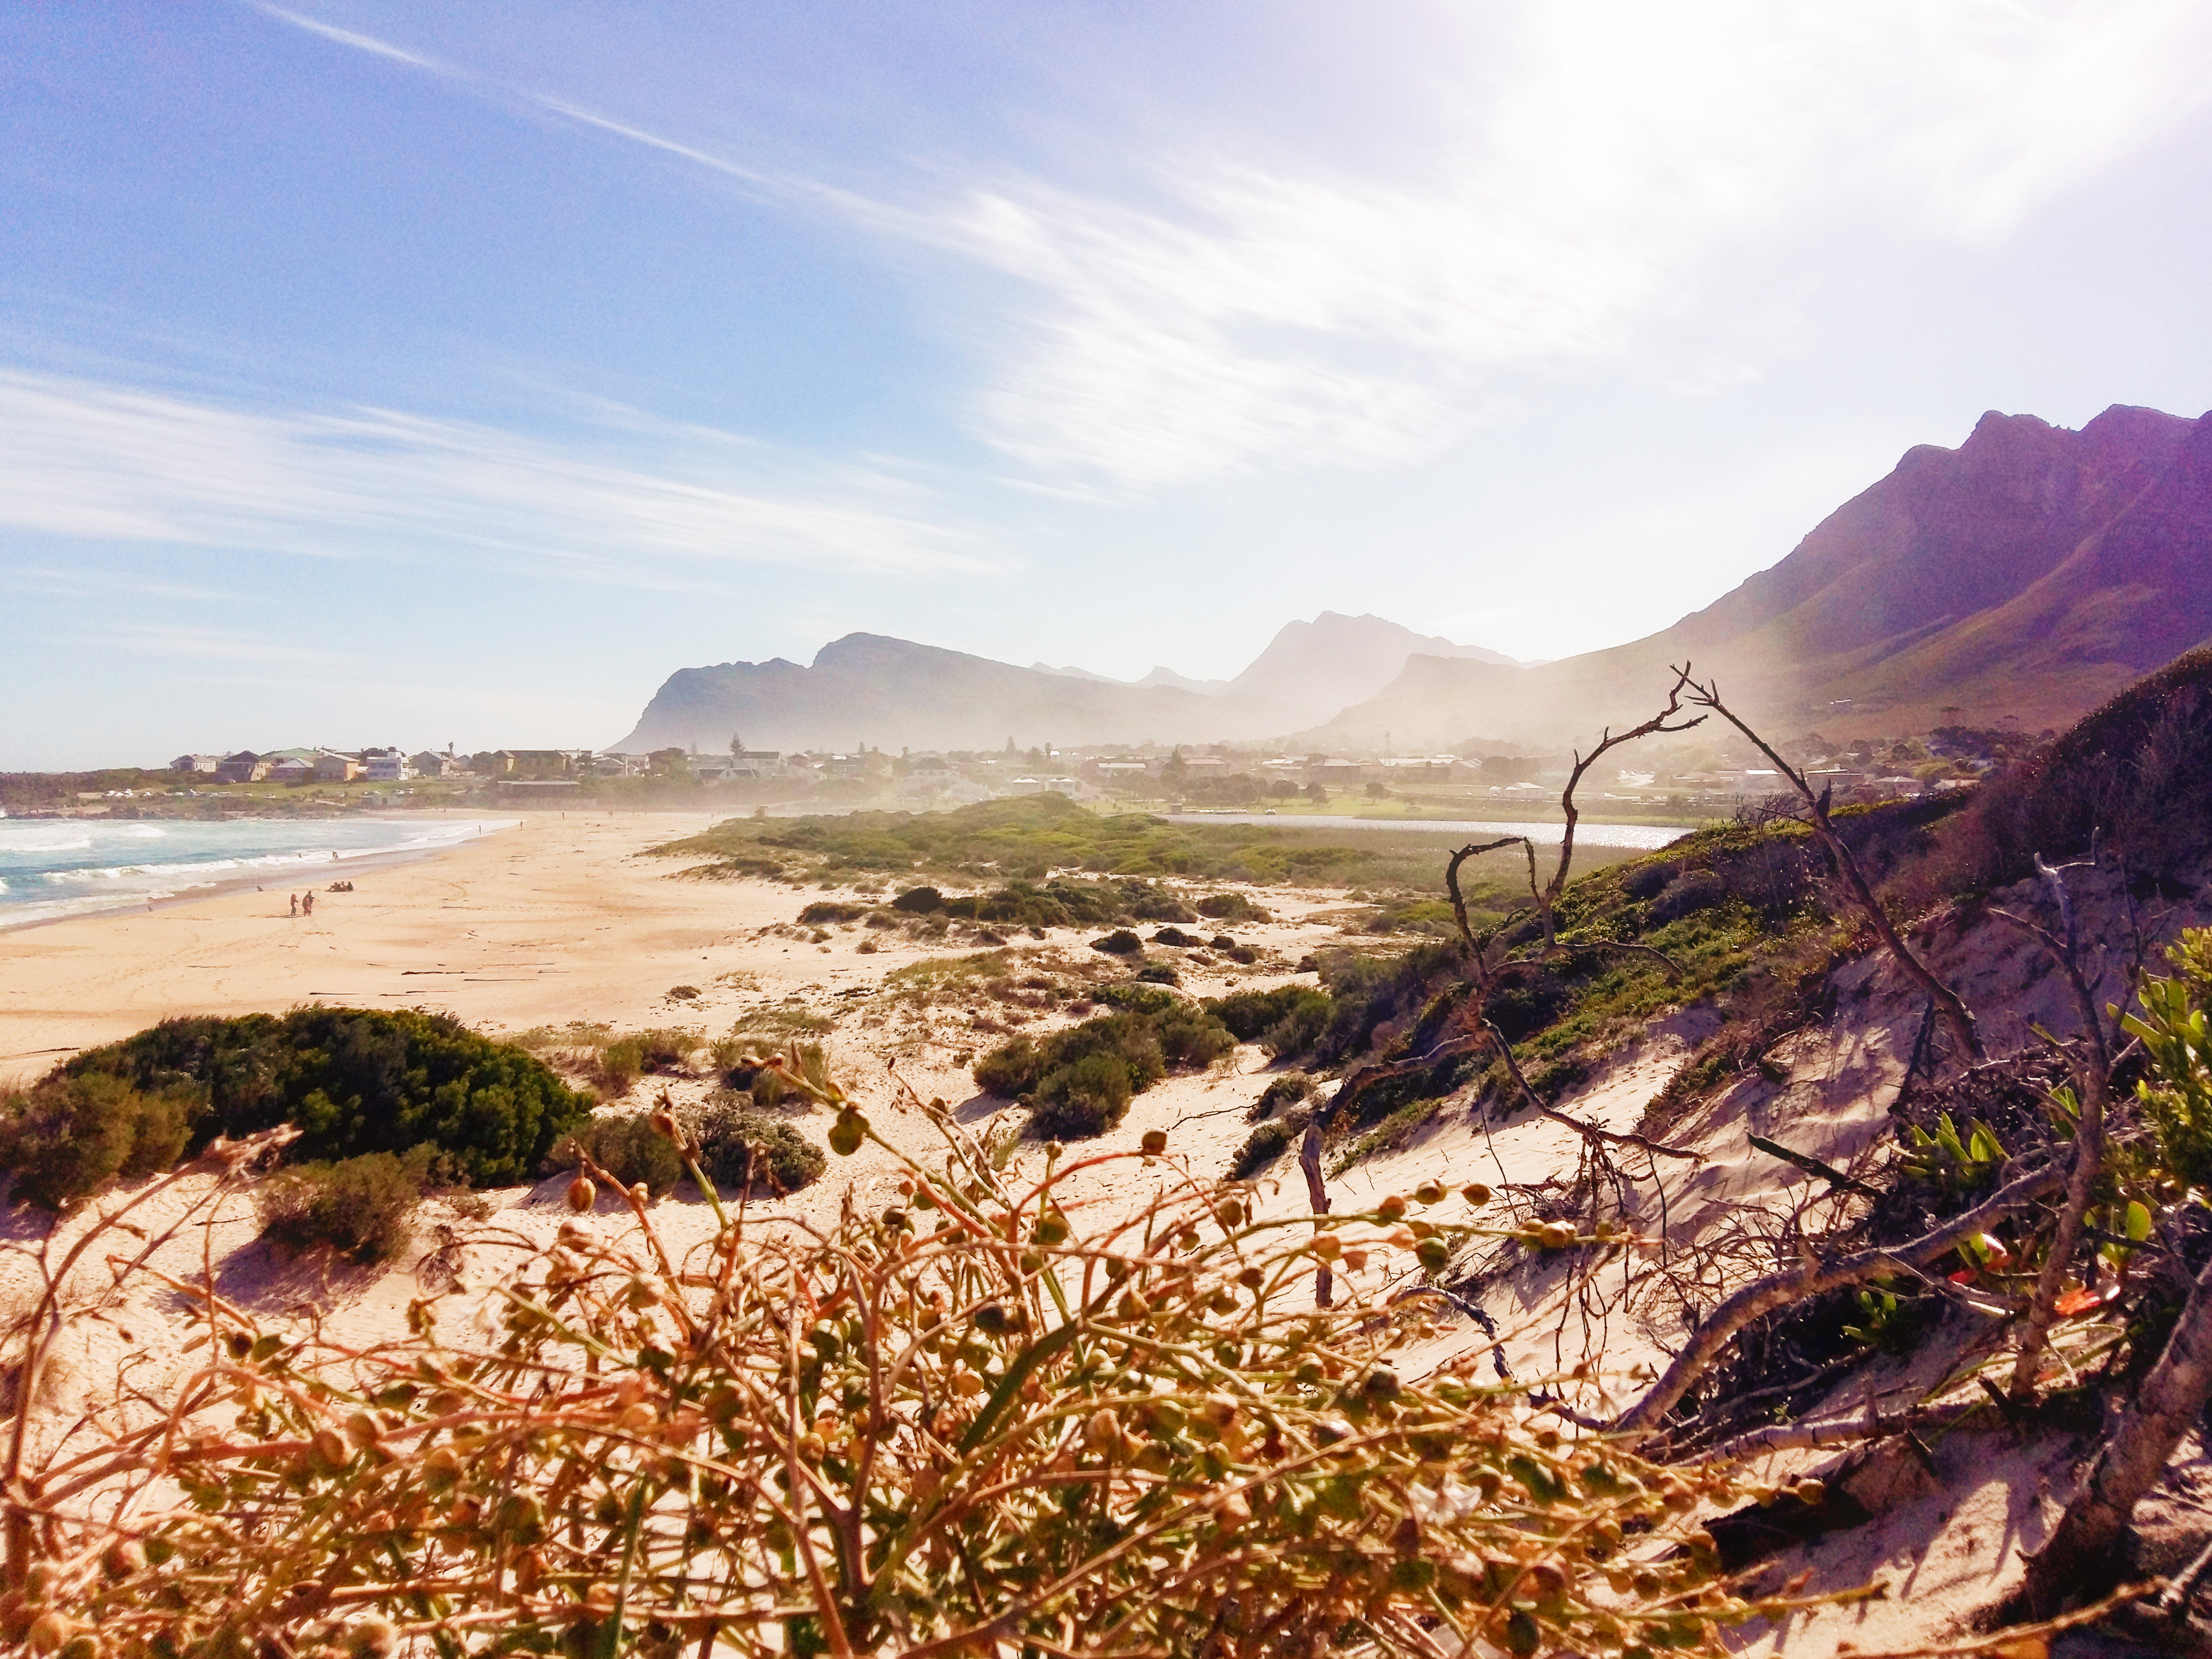 Cape Town to Kleinmond, An unforgettable road trip